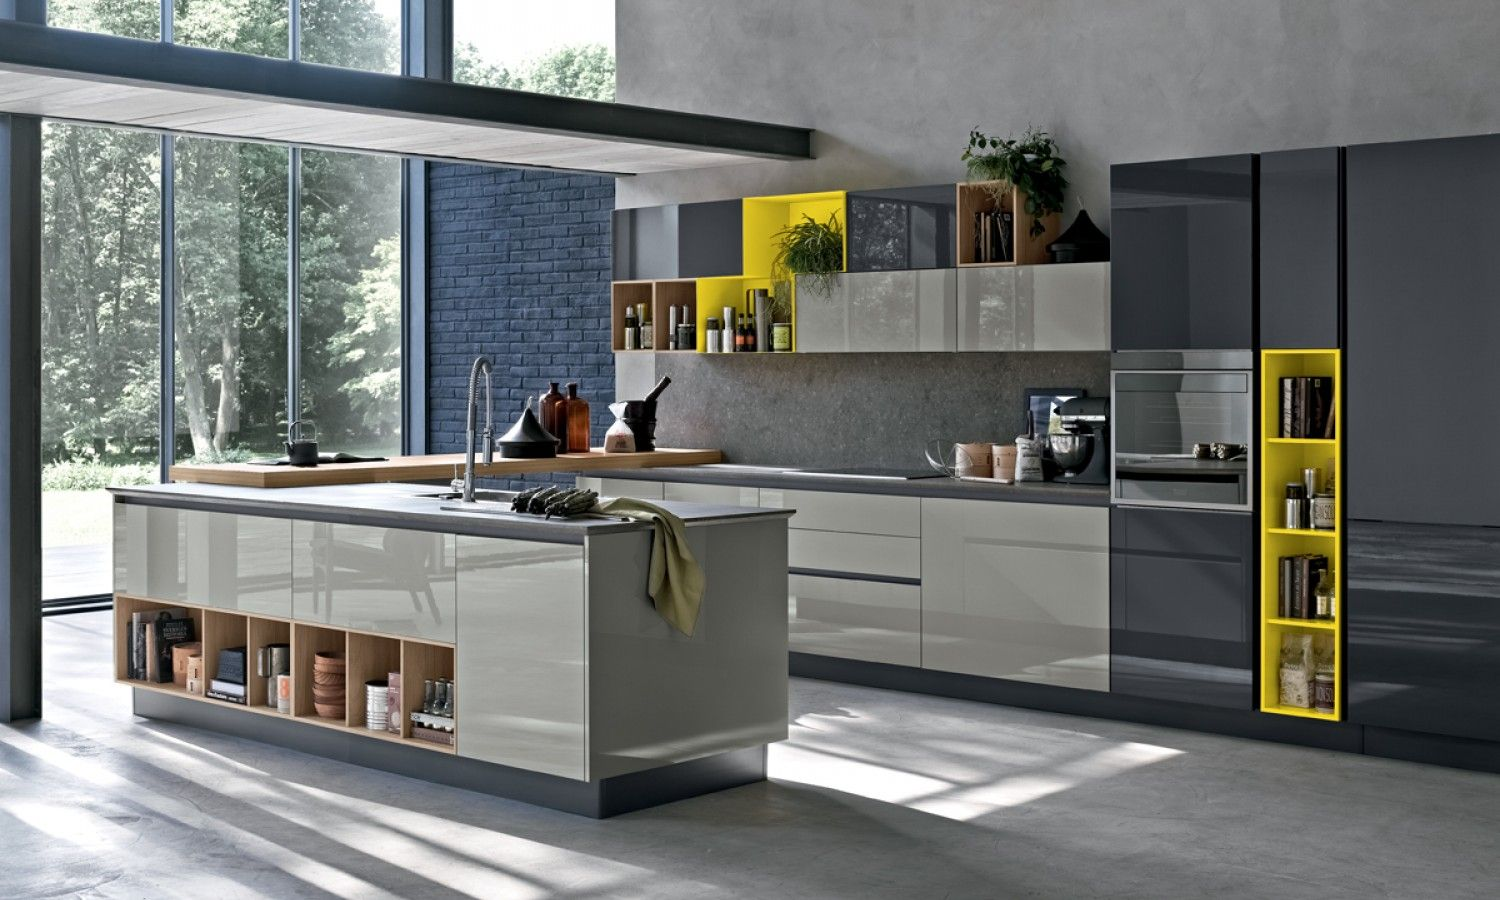 Stosa cucine | Кухни | Pinterest | Interiors, Kitchens and Catalog